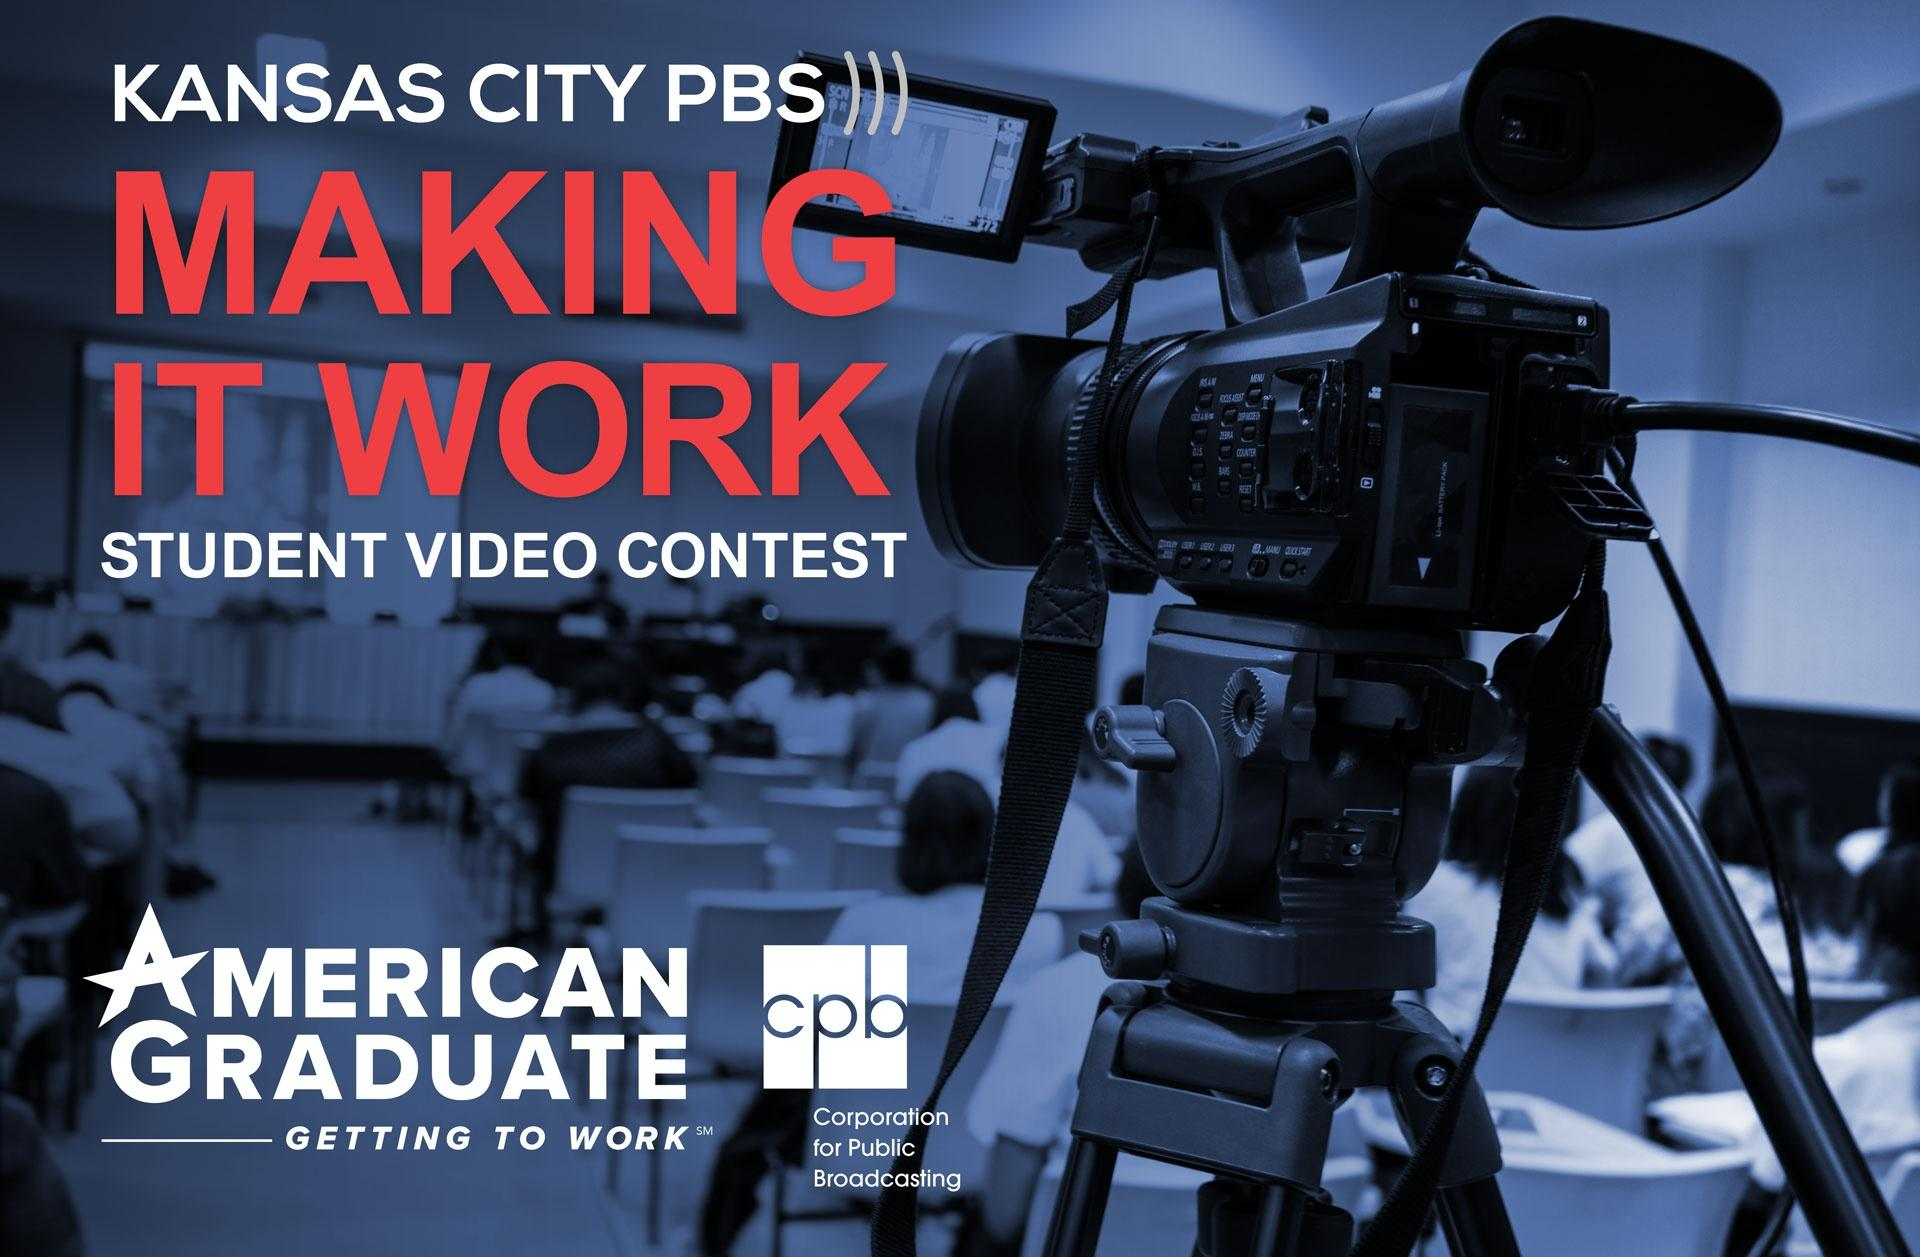 Making it Work Student Video Contest American Graduate Getting to Work - video camera in classroom image